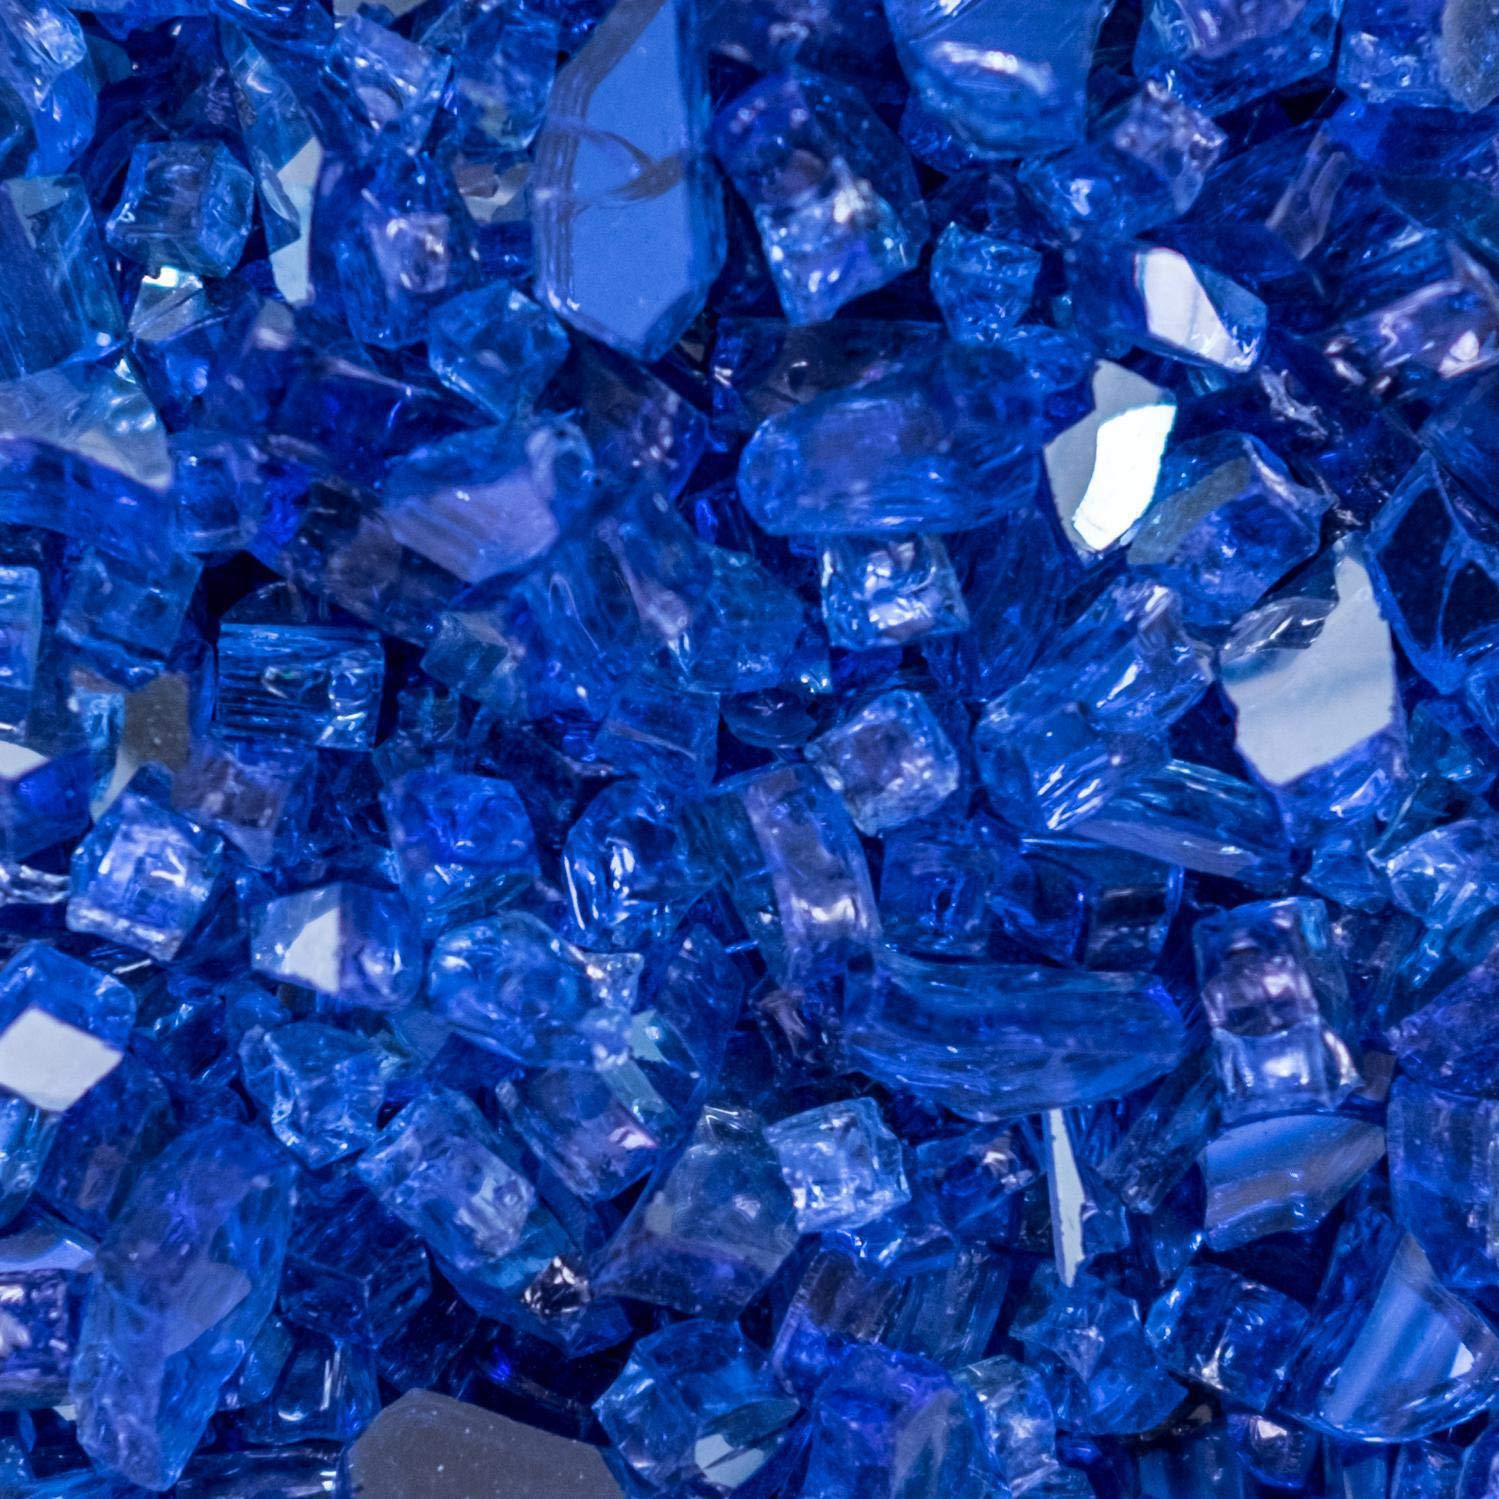 Lakeview Outdoor Designs 1/4-Inch Blue-Jay Reflective Fire Glass - 80 Pounds